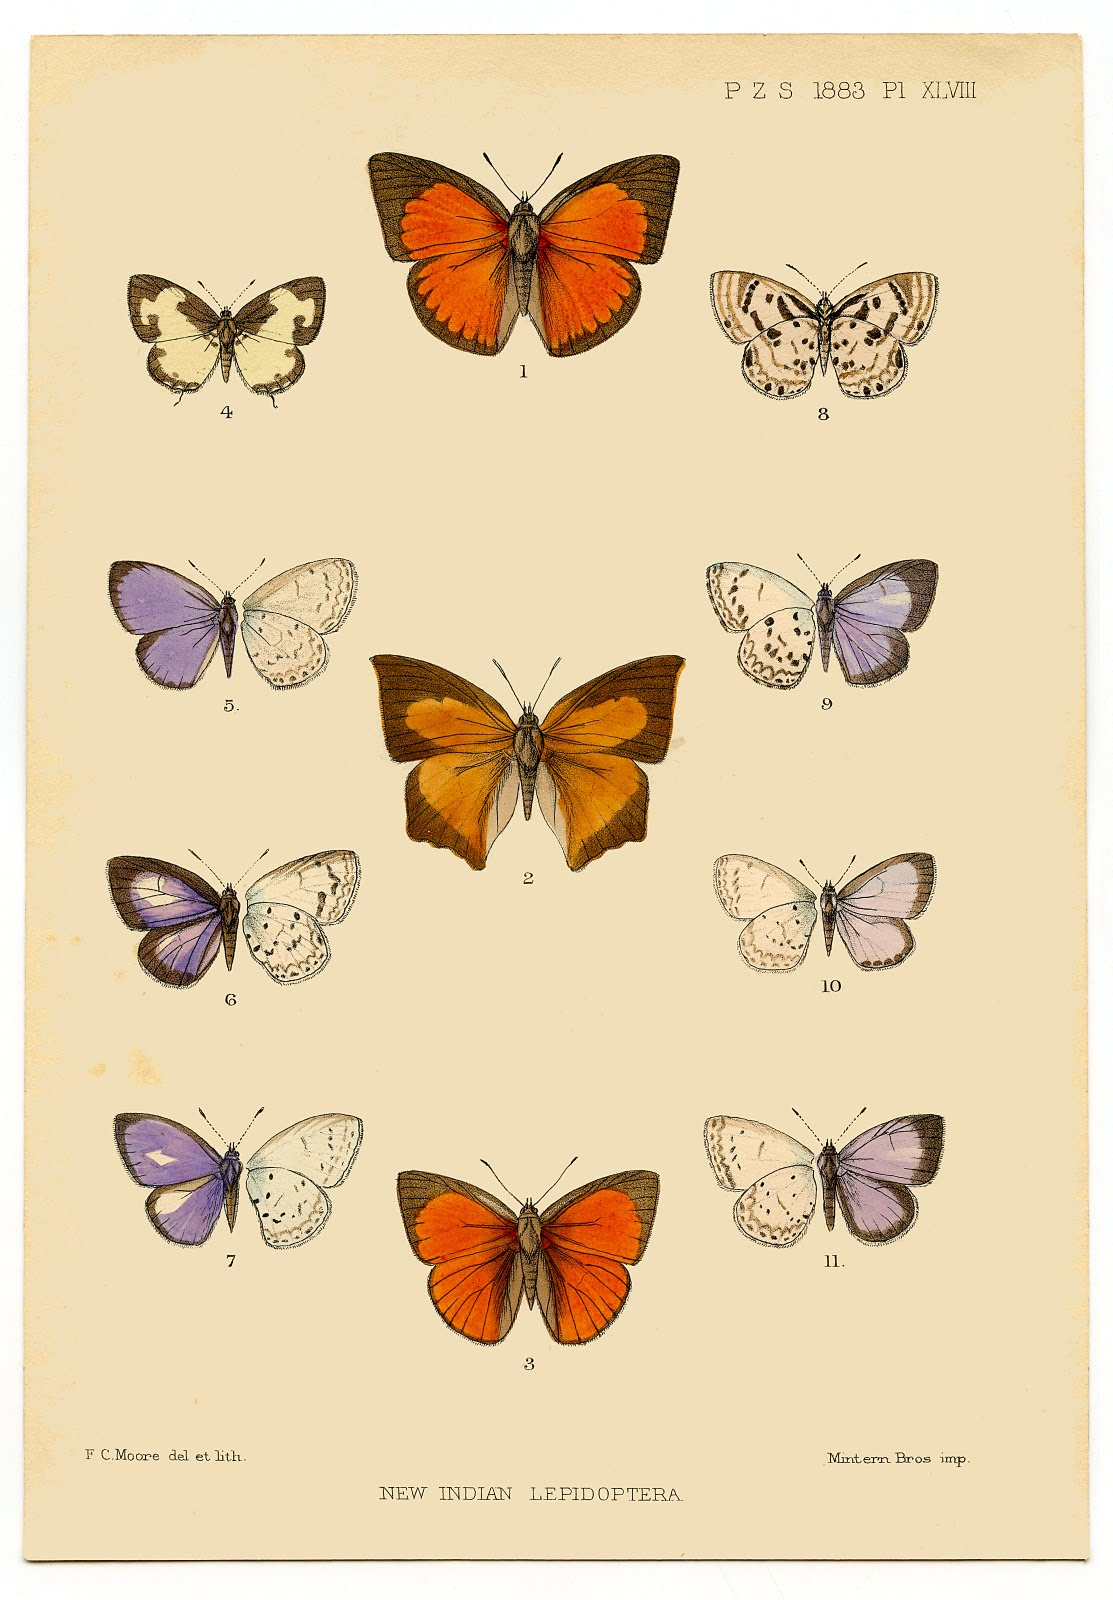 Instant Printable Art - Antique Butterfly - The Graphics Fairy